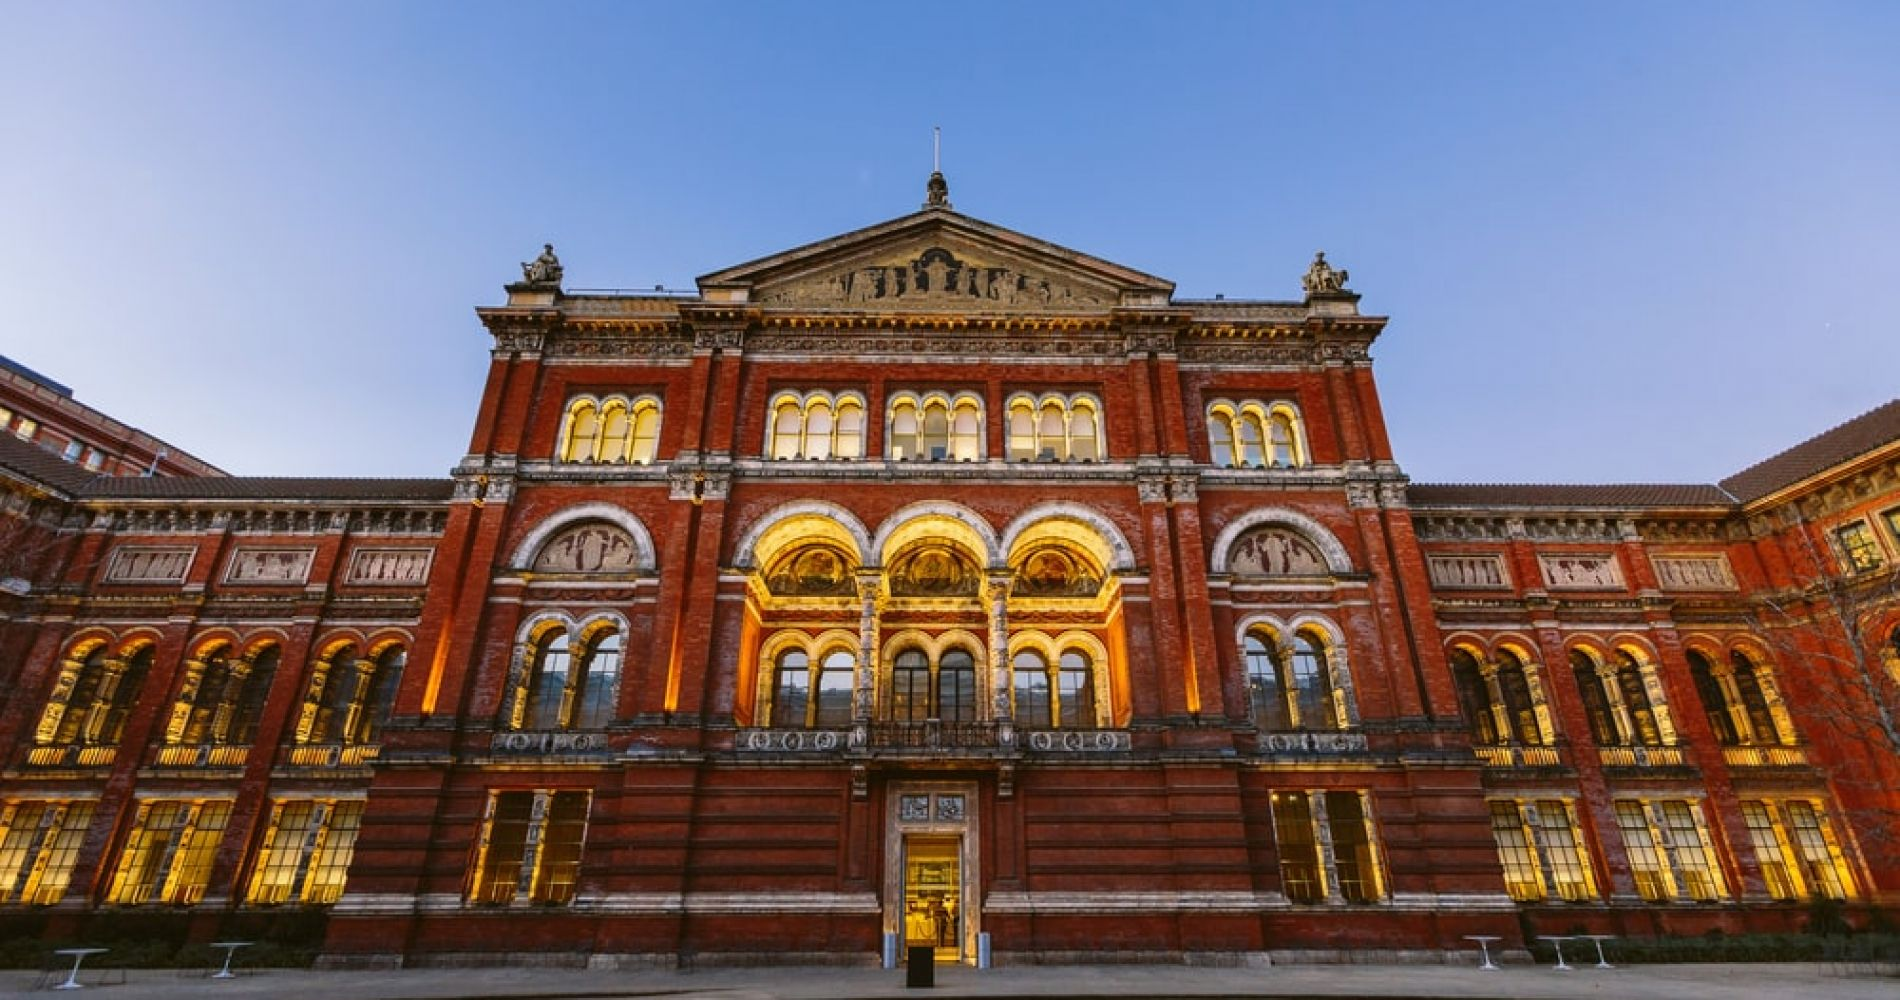 Visit the iconic Victoria and Albert Museum in London